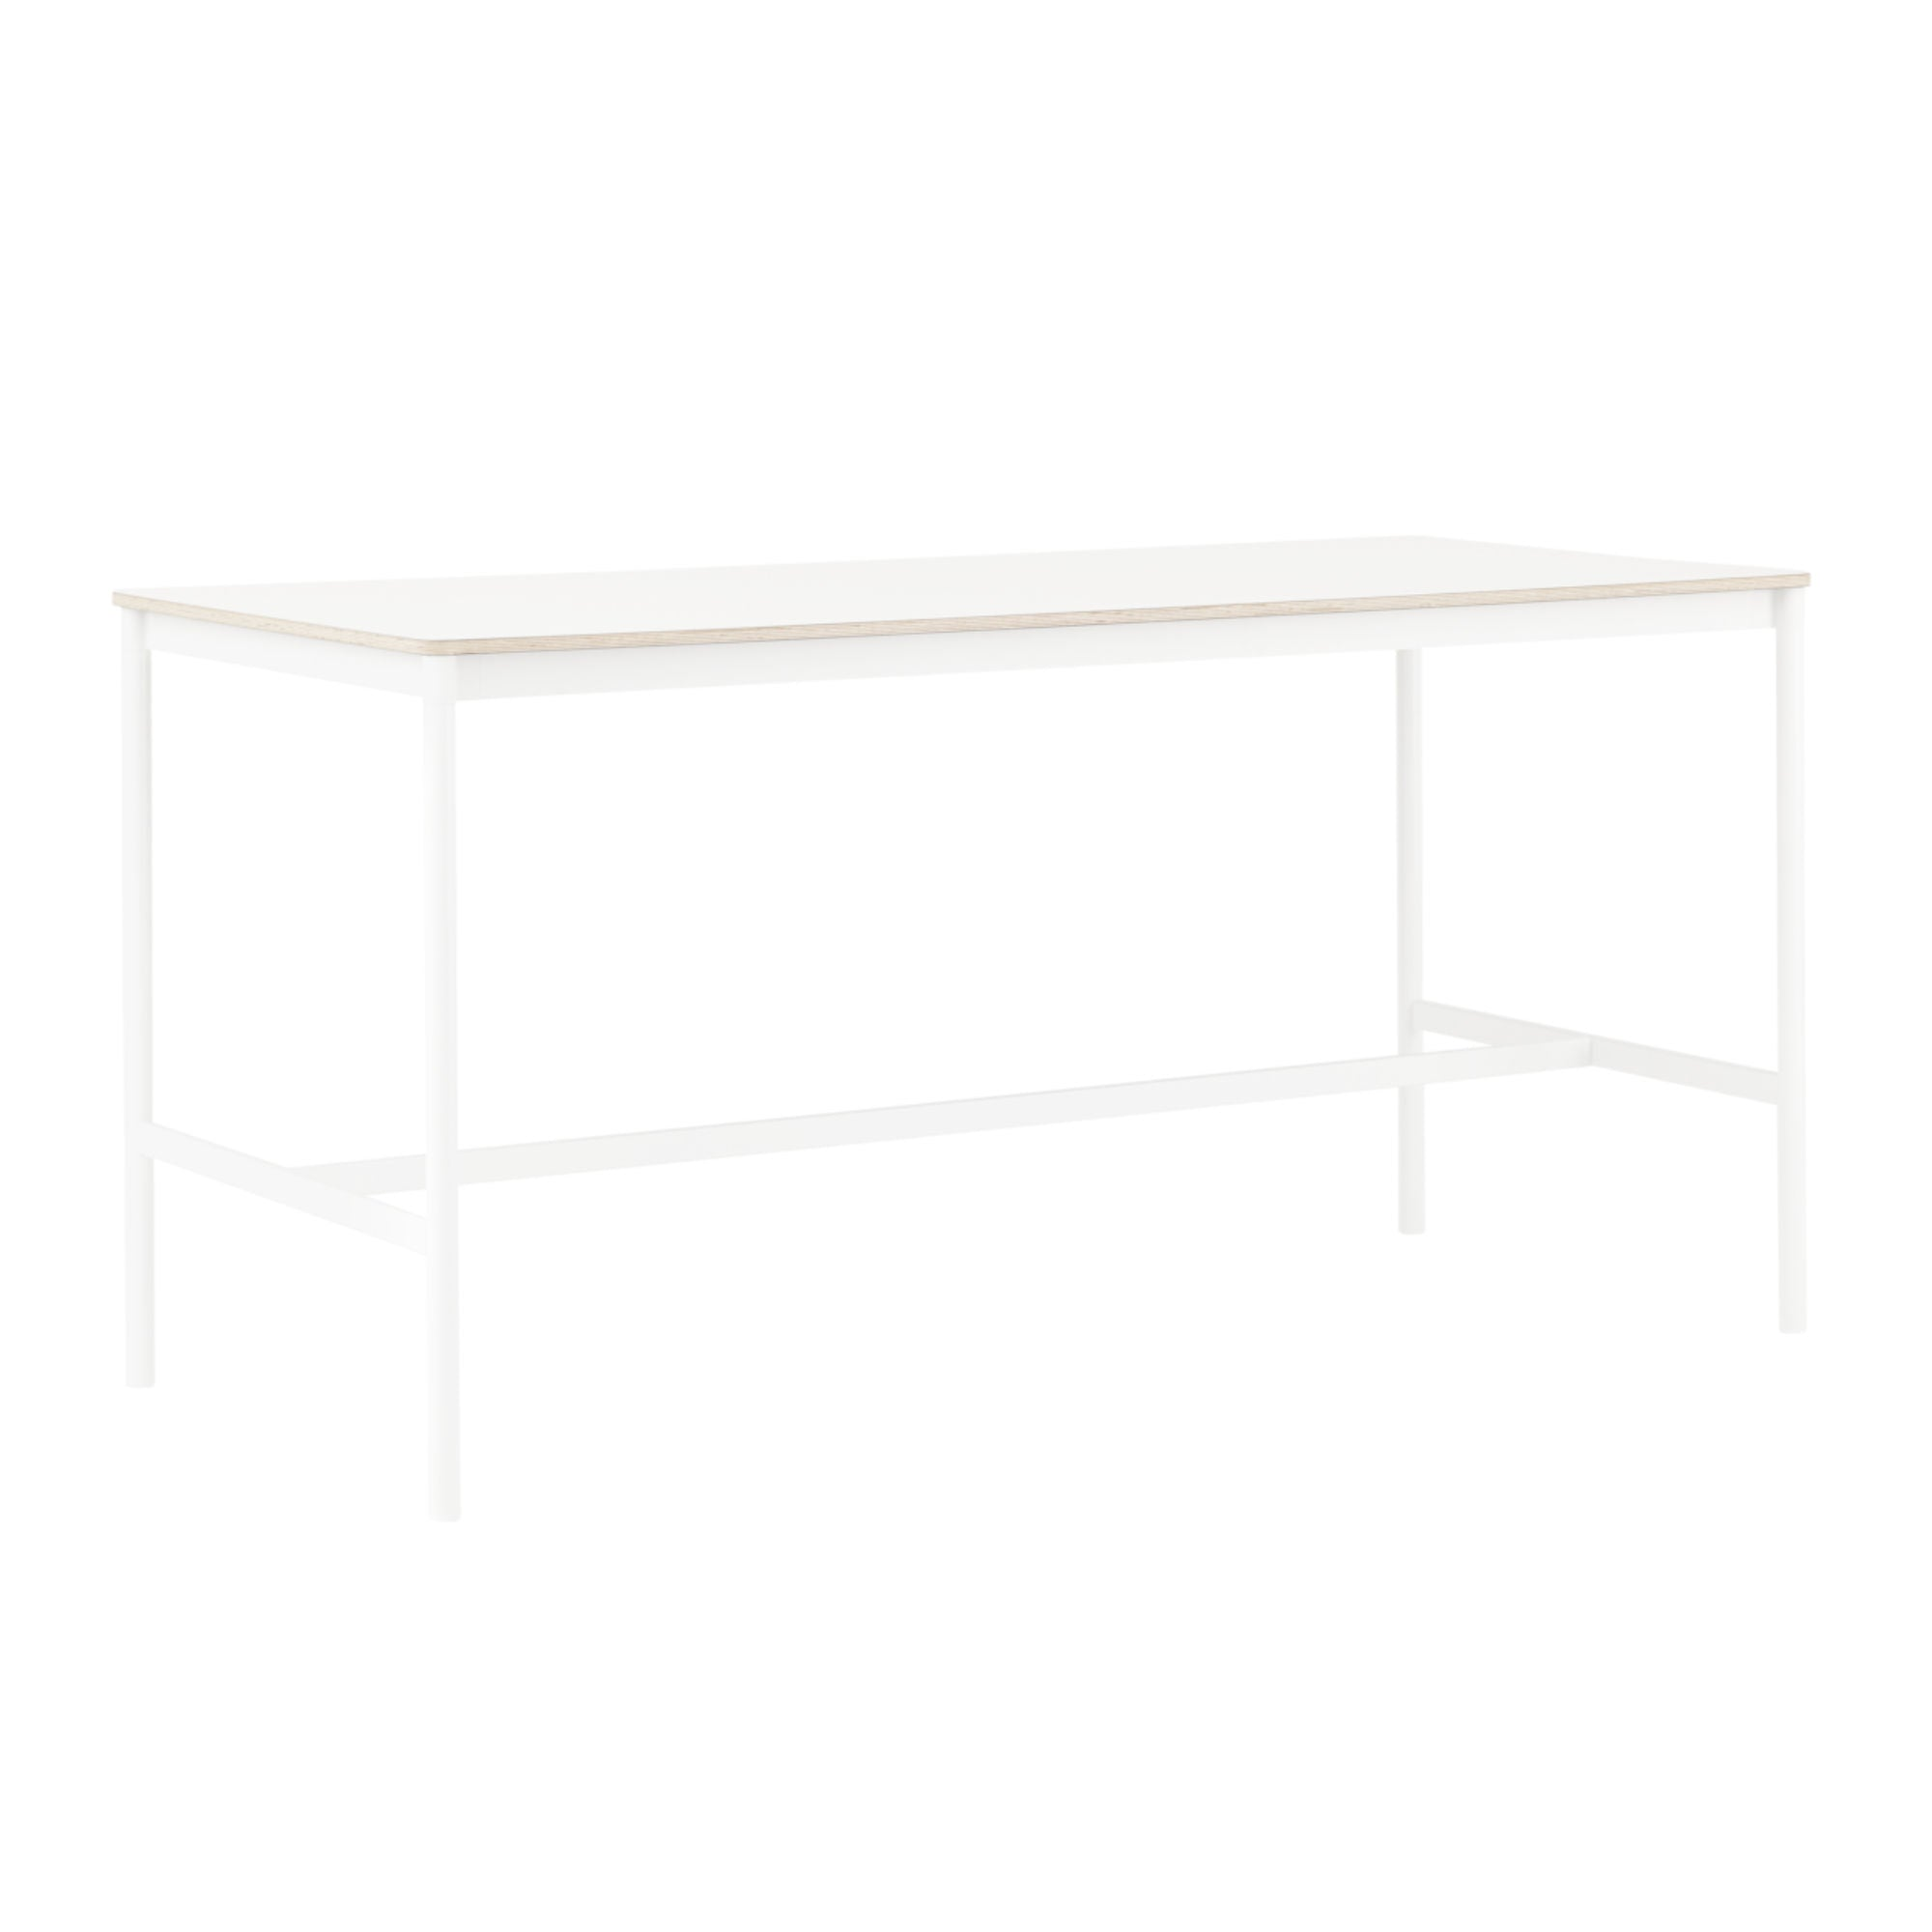 Muuto Base High Table 190x85 h:95cm , White Laminate/Plywood/White